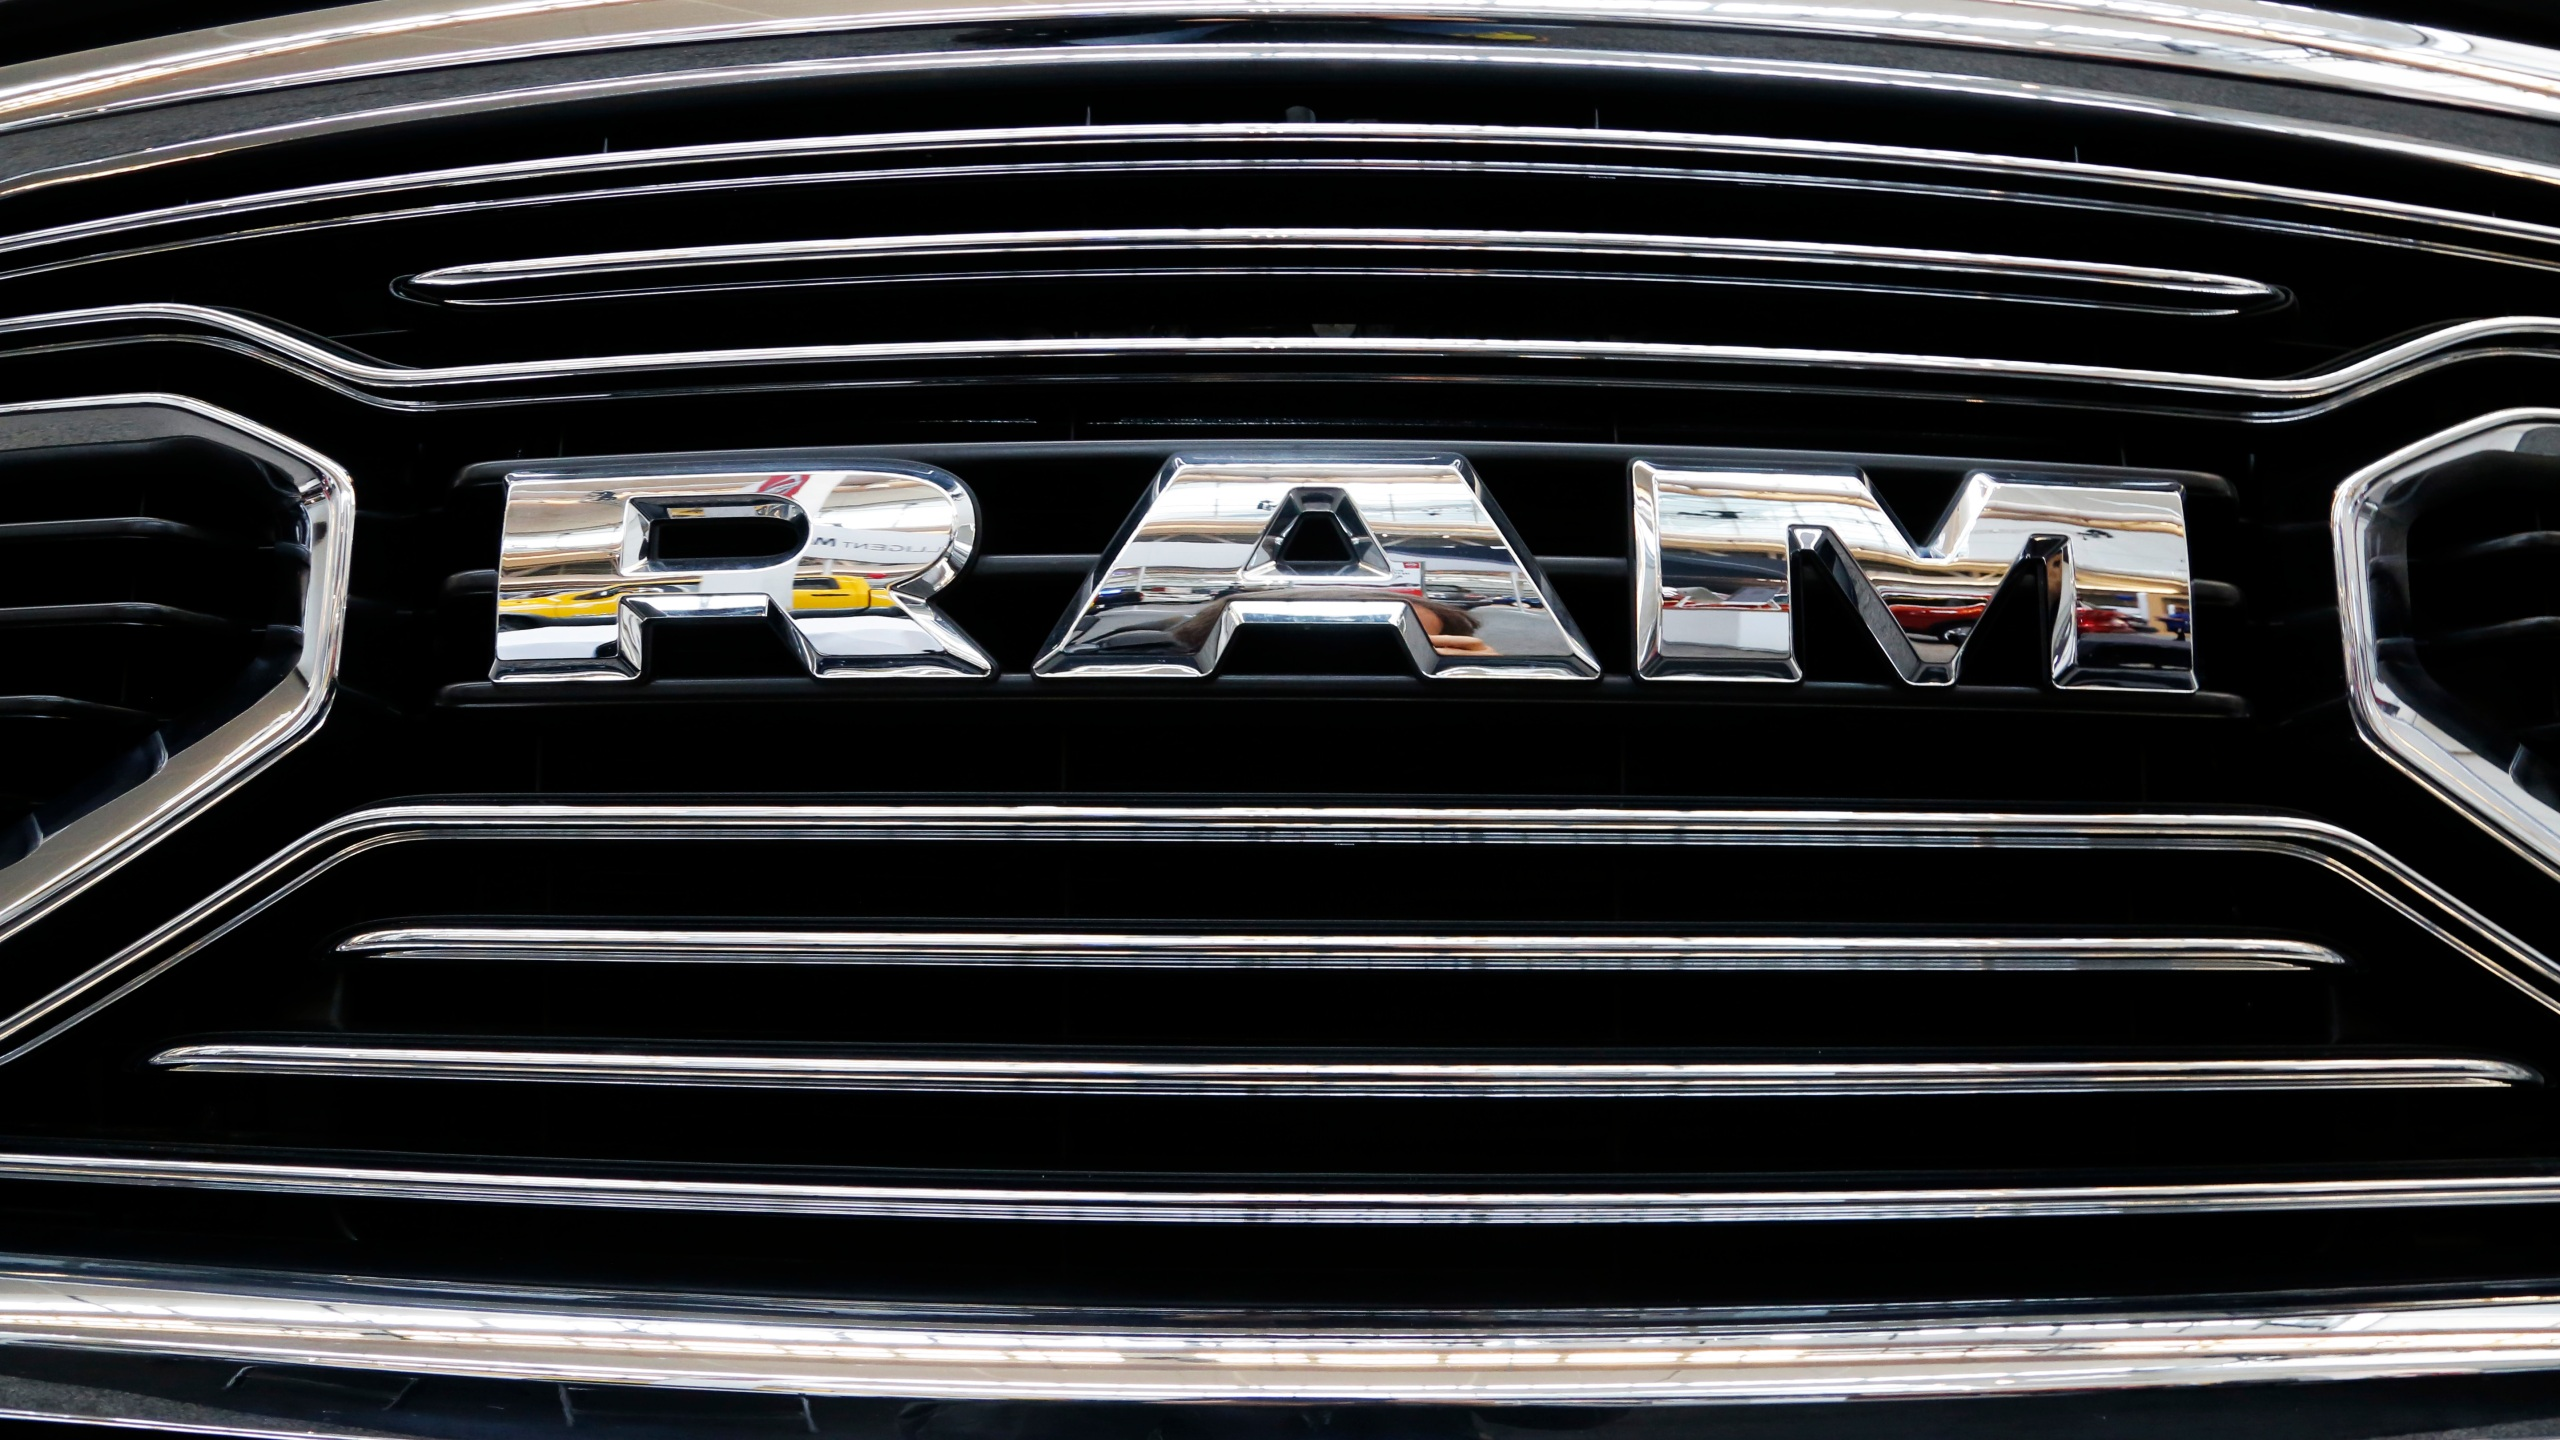 This is the grill of a 2018 Ram truck on display at the Pittsburgh Auto Show, in a Thursday, Feb. 15, 2018, file photo. U.S. safety regulators are investigating fuel pump failures in more than 600,000 diesel Ram trucks that could cause the engines to stall or lose power. The National Highway Traffic Safety Administration says in documents posted on its website Monday, Oct. 18, 2021, that it received 22 complaints and two field reports of engines stalling due to high-pressure fuel pumps failing.(AP Photo/Gene J. Puskar, File)